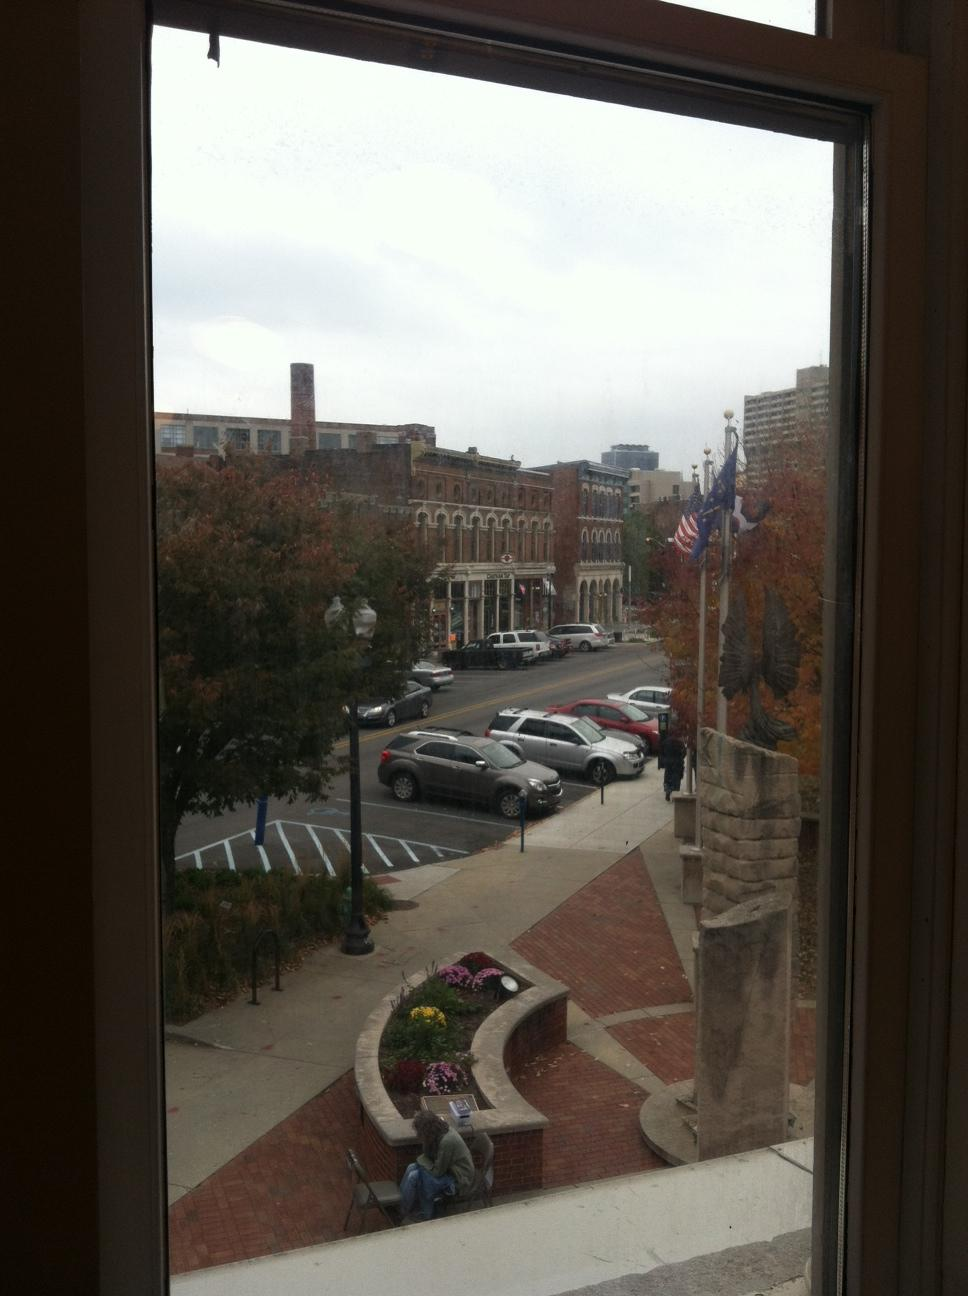 Room With a View: Indianapolis Fire Museum, Mass Ave